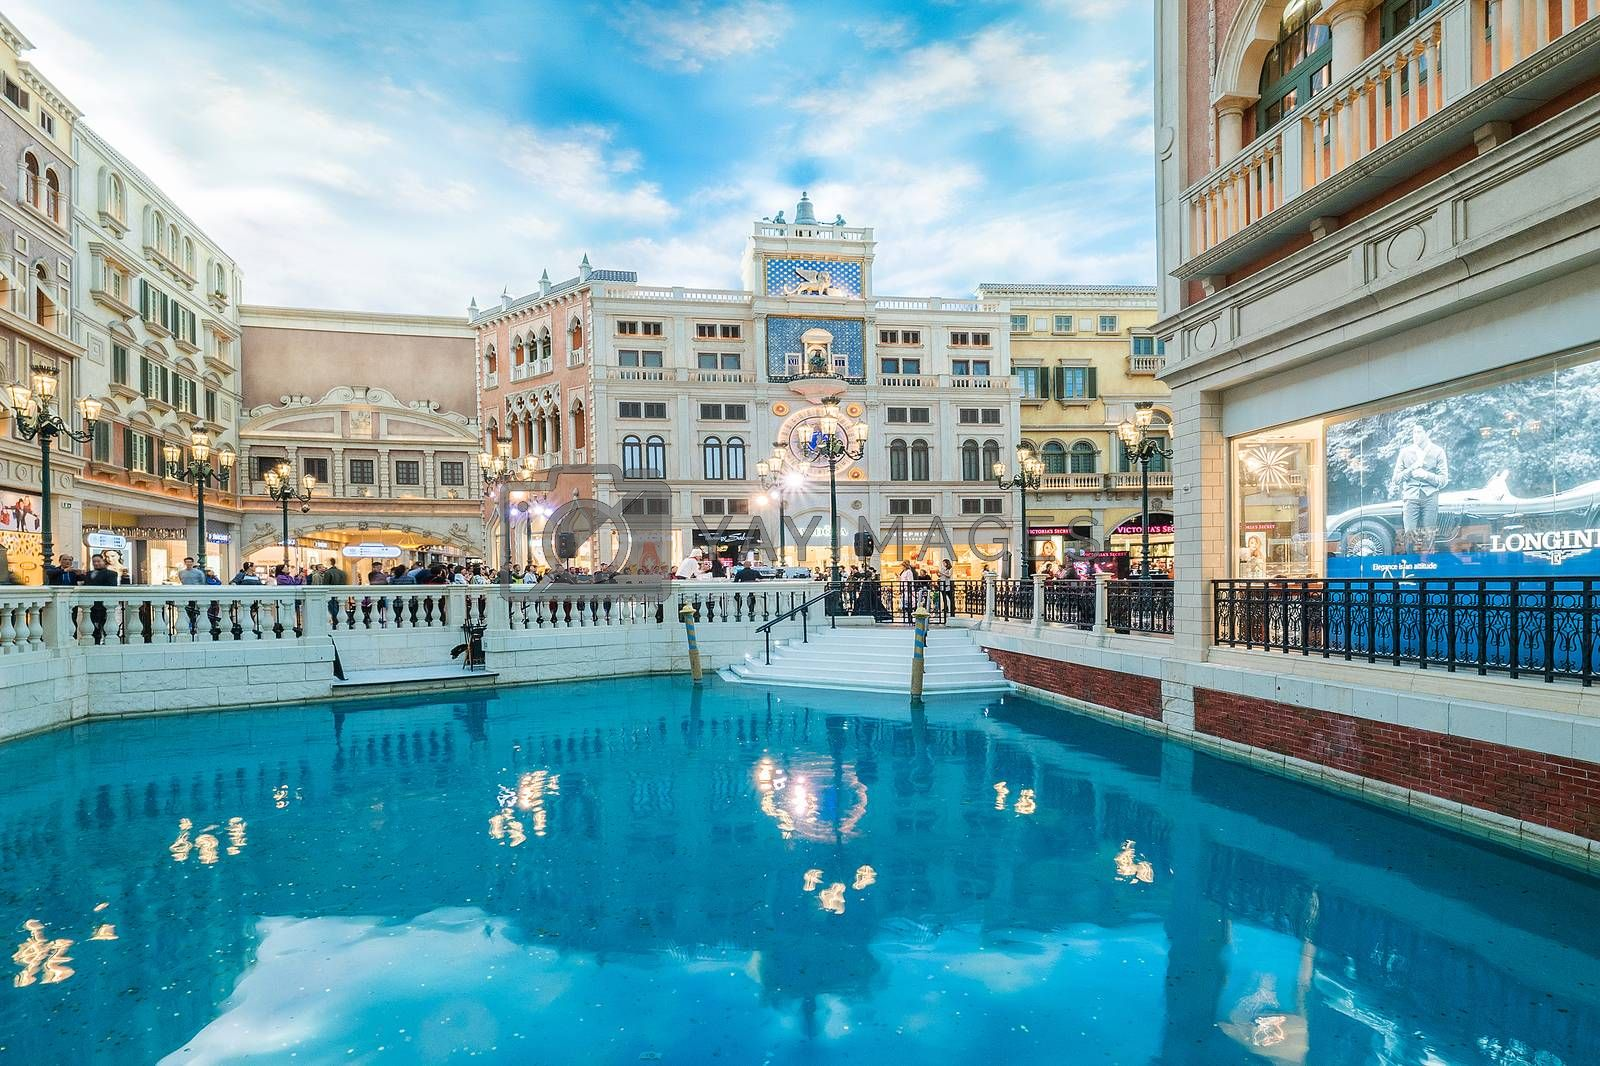 MACAU CHINA-JANUARY 11 visitor on gondola boat in Venetian Hotel The famous shopping mall luxury hotel landmark and the largest casino in the world on January 11,2016 in Macau China